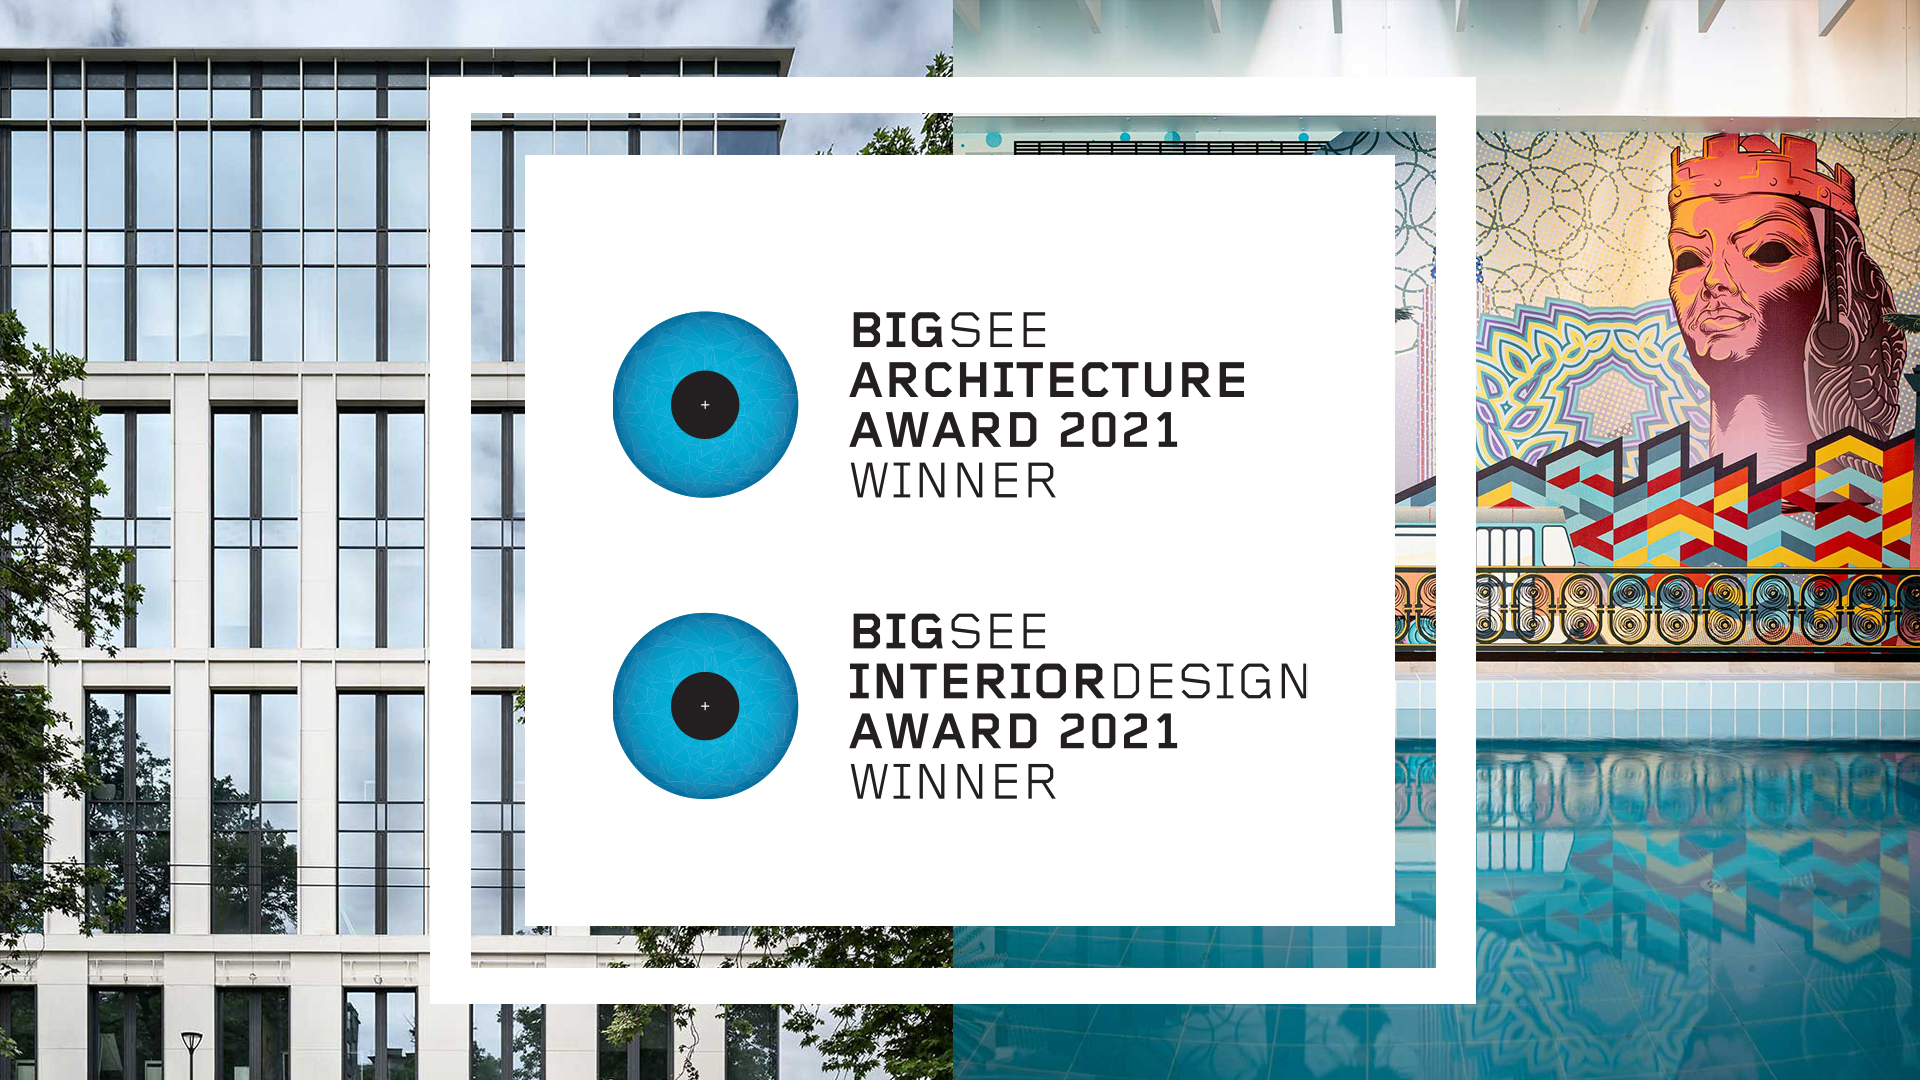 Two awards for SGI from the international BIG SEE Аwards